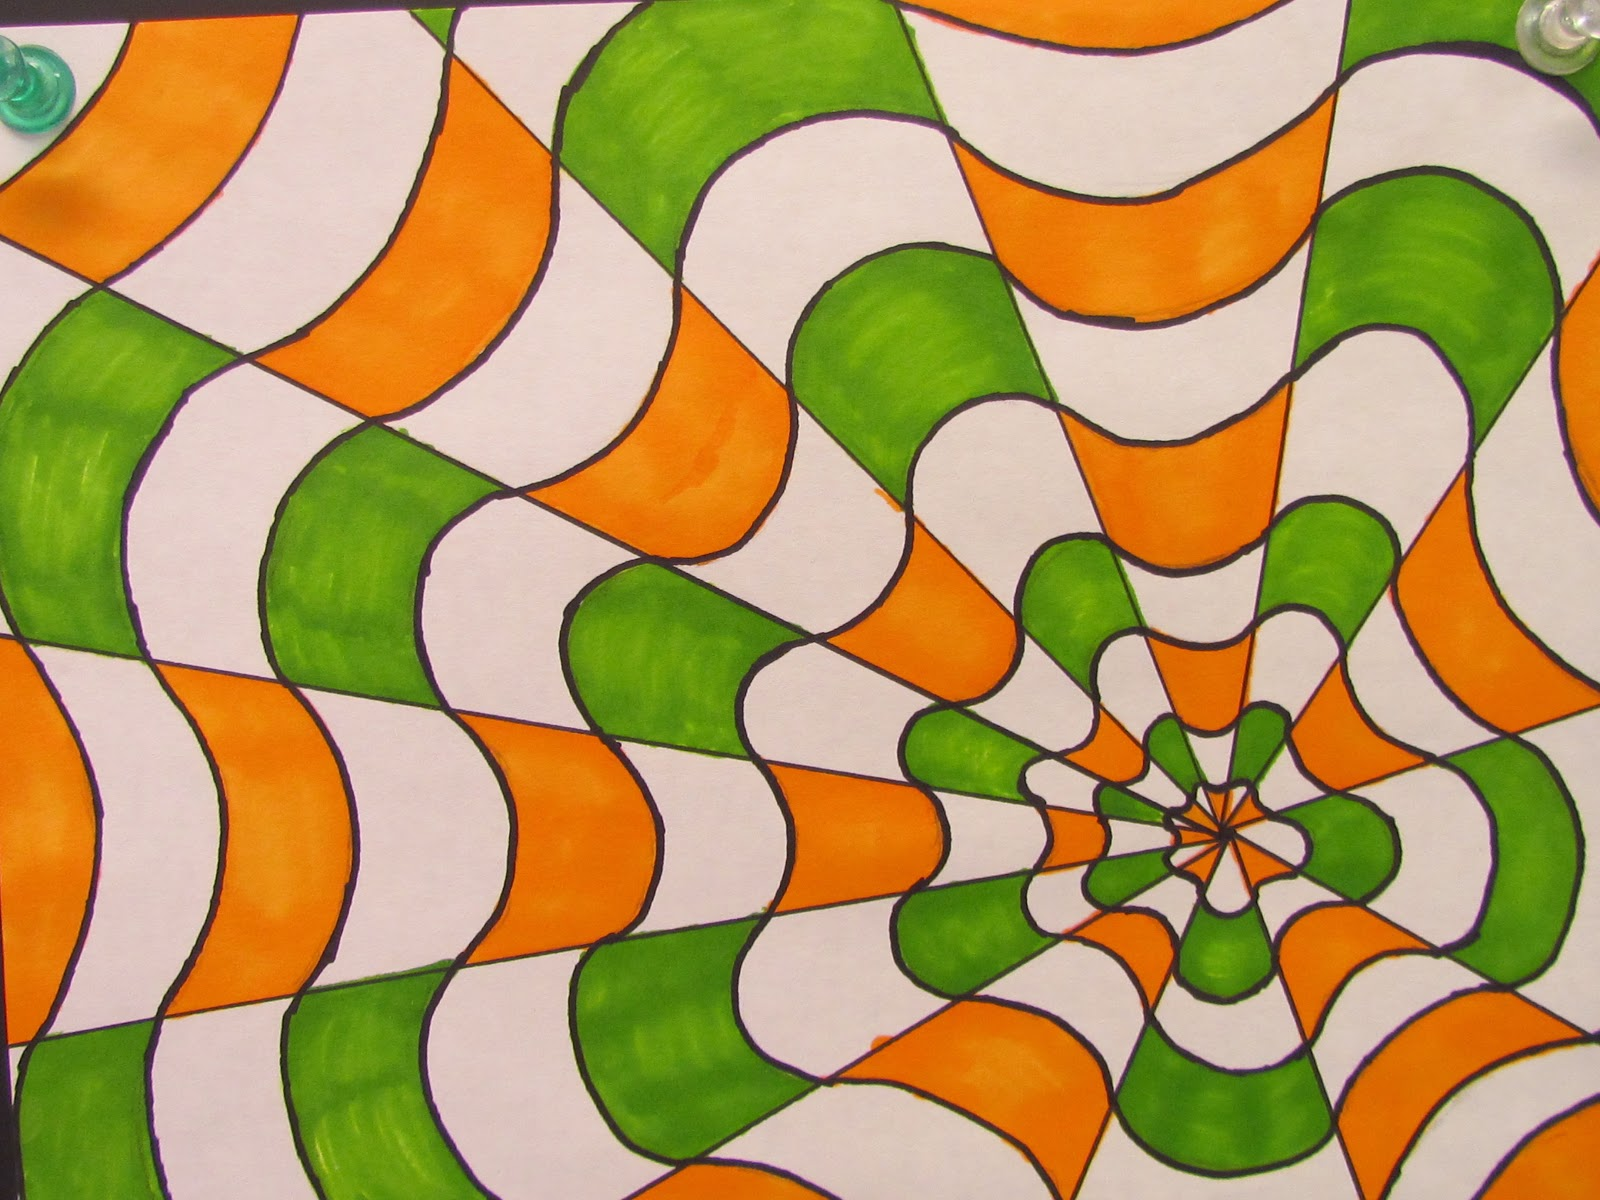 optical illusion illusions amazing draw drawing hand lesson fickert adventures miss skipping trouble spaces mine boxes lot had students ziyaret